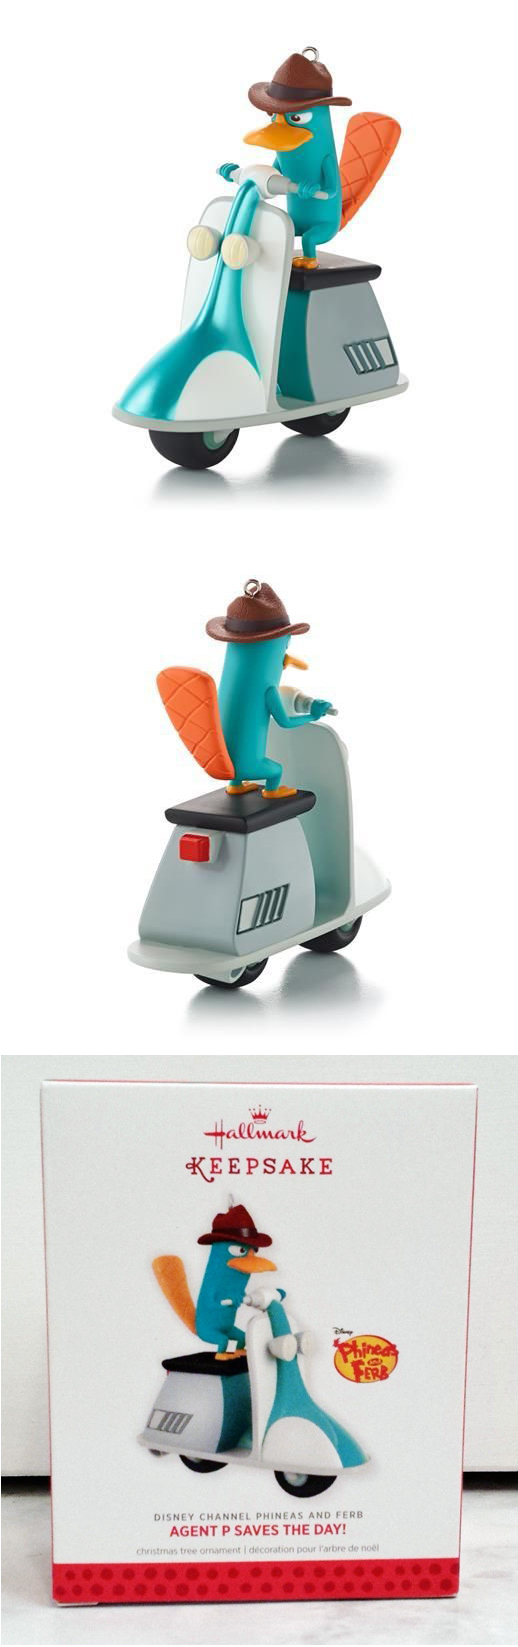 Agent P Scooter Hallmark Christmas Ornament Phineas and Ferb Disney